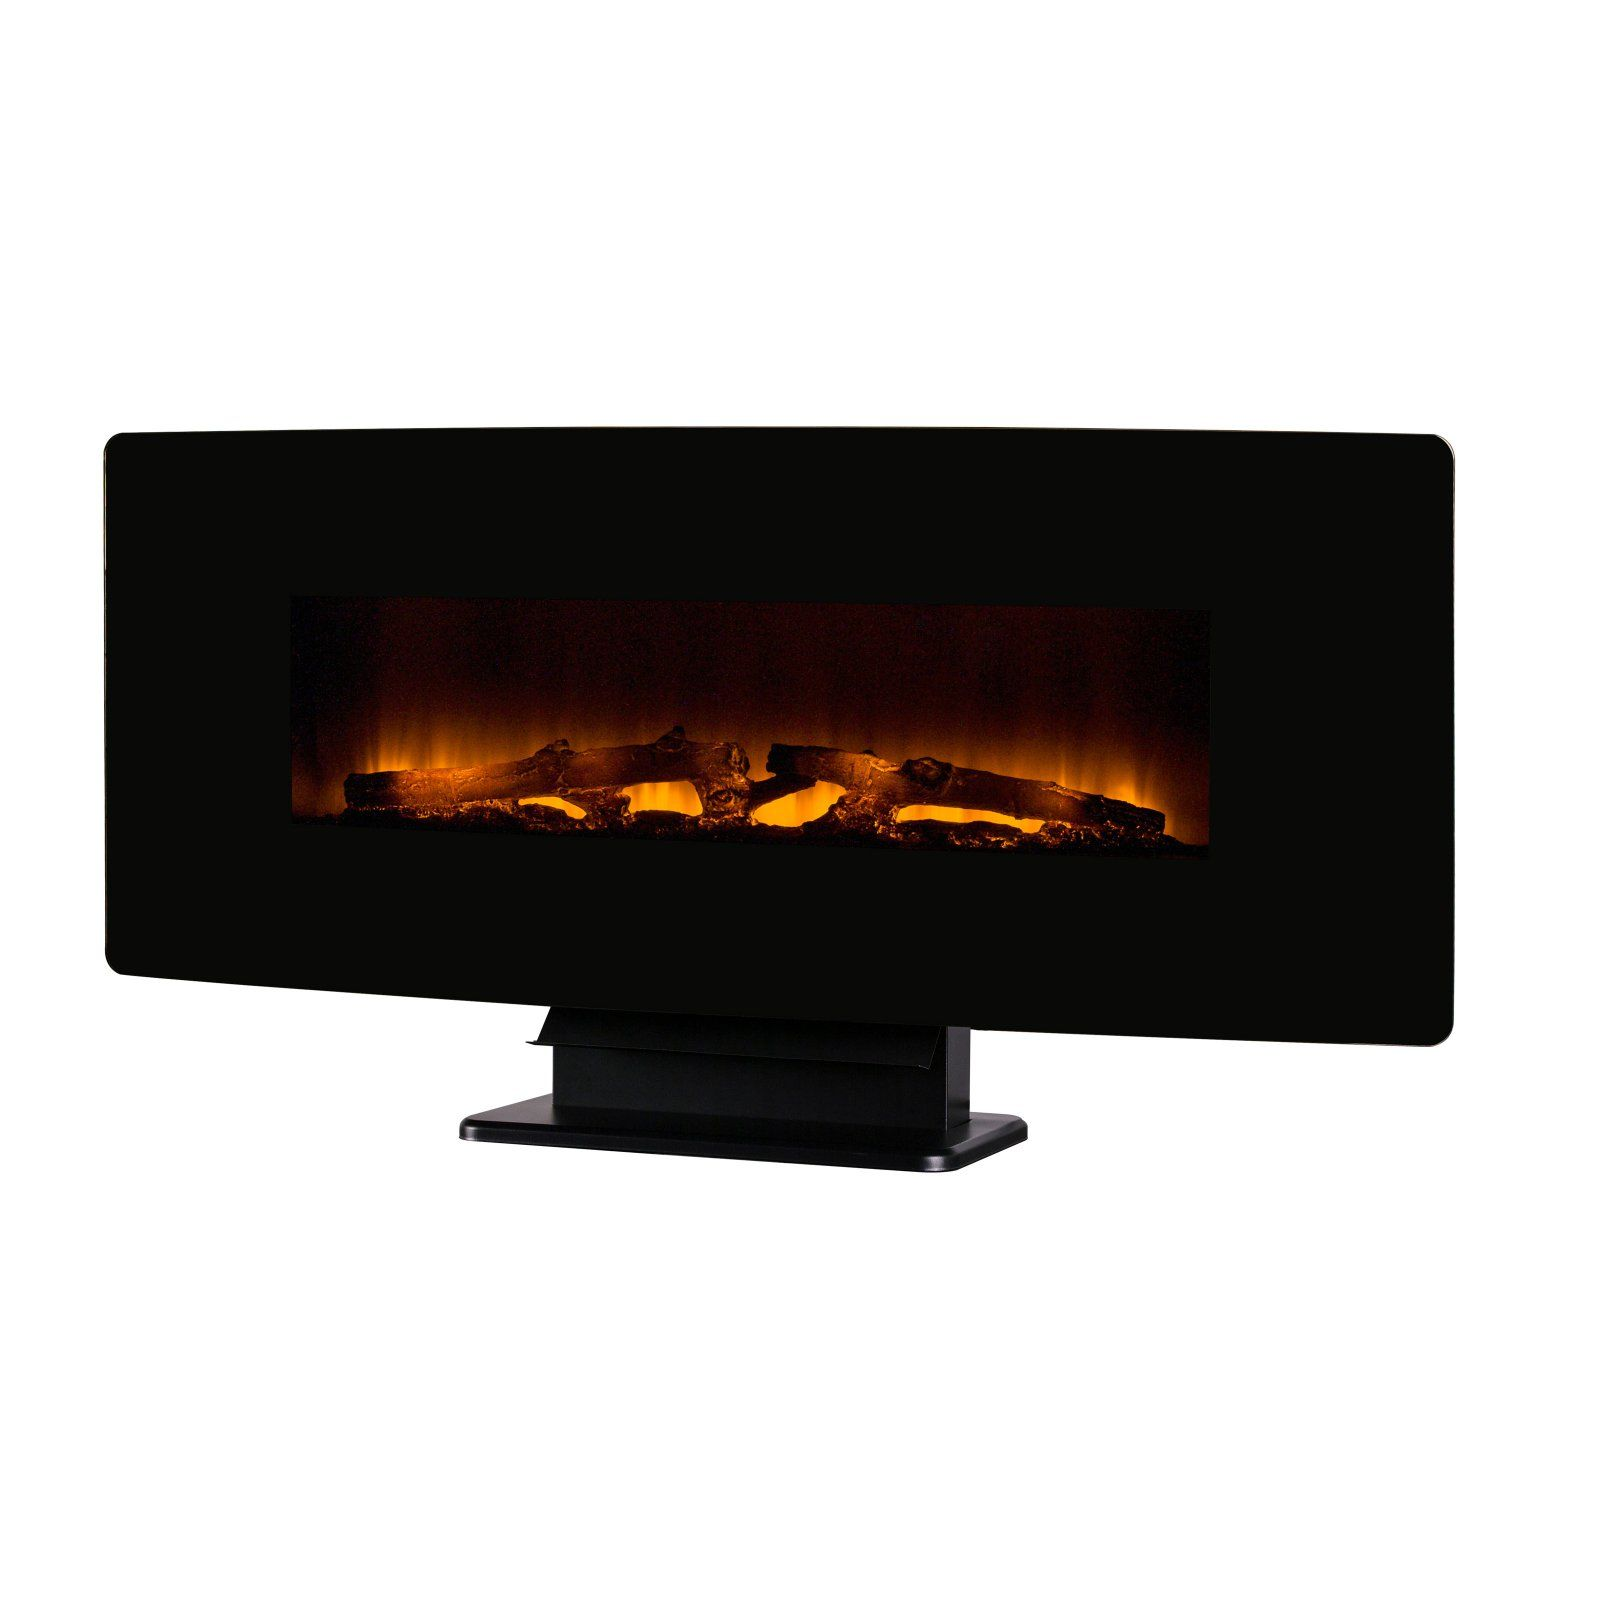 Muskoka Curved Front Wall Mount Electric Fireplace Curved Glass